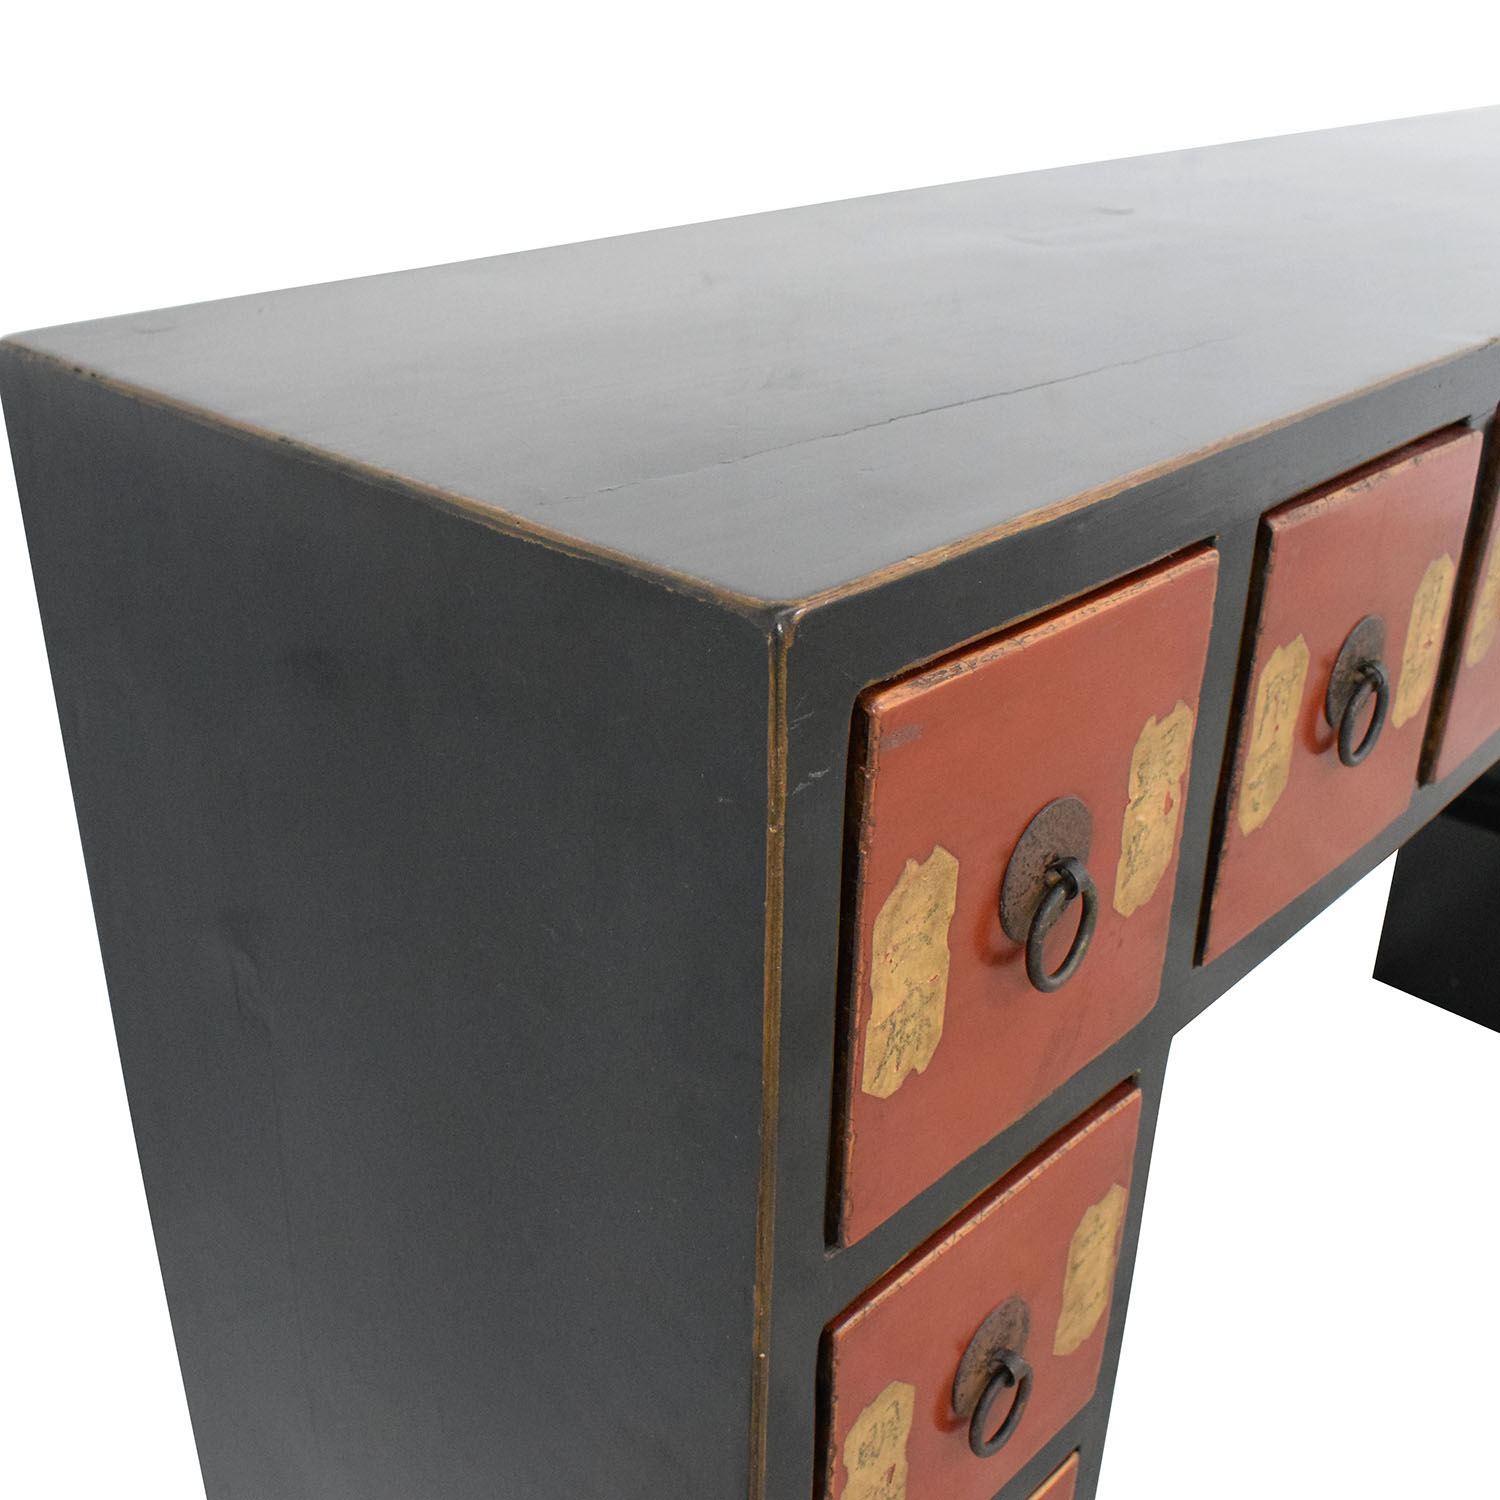 Chinese Antique Credenza with Drawers on sale